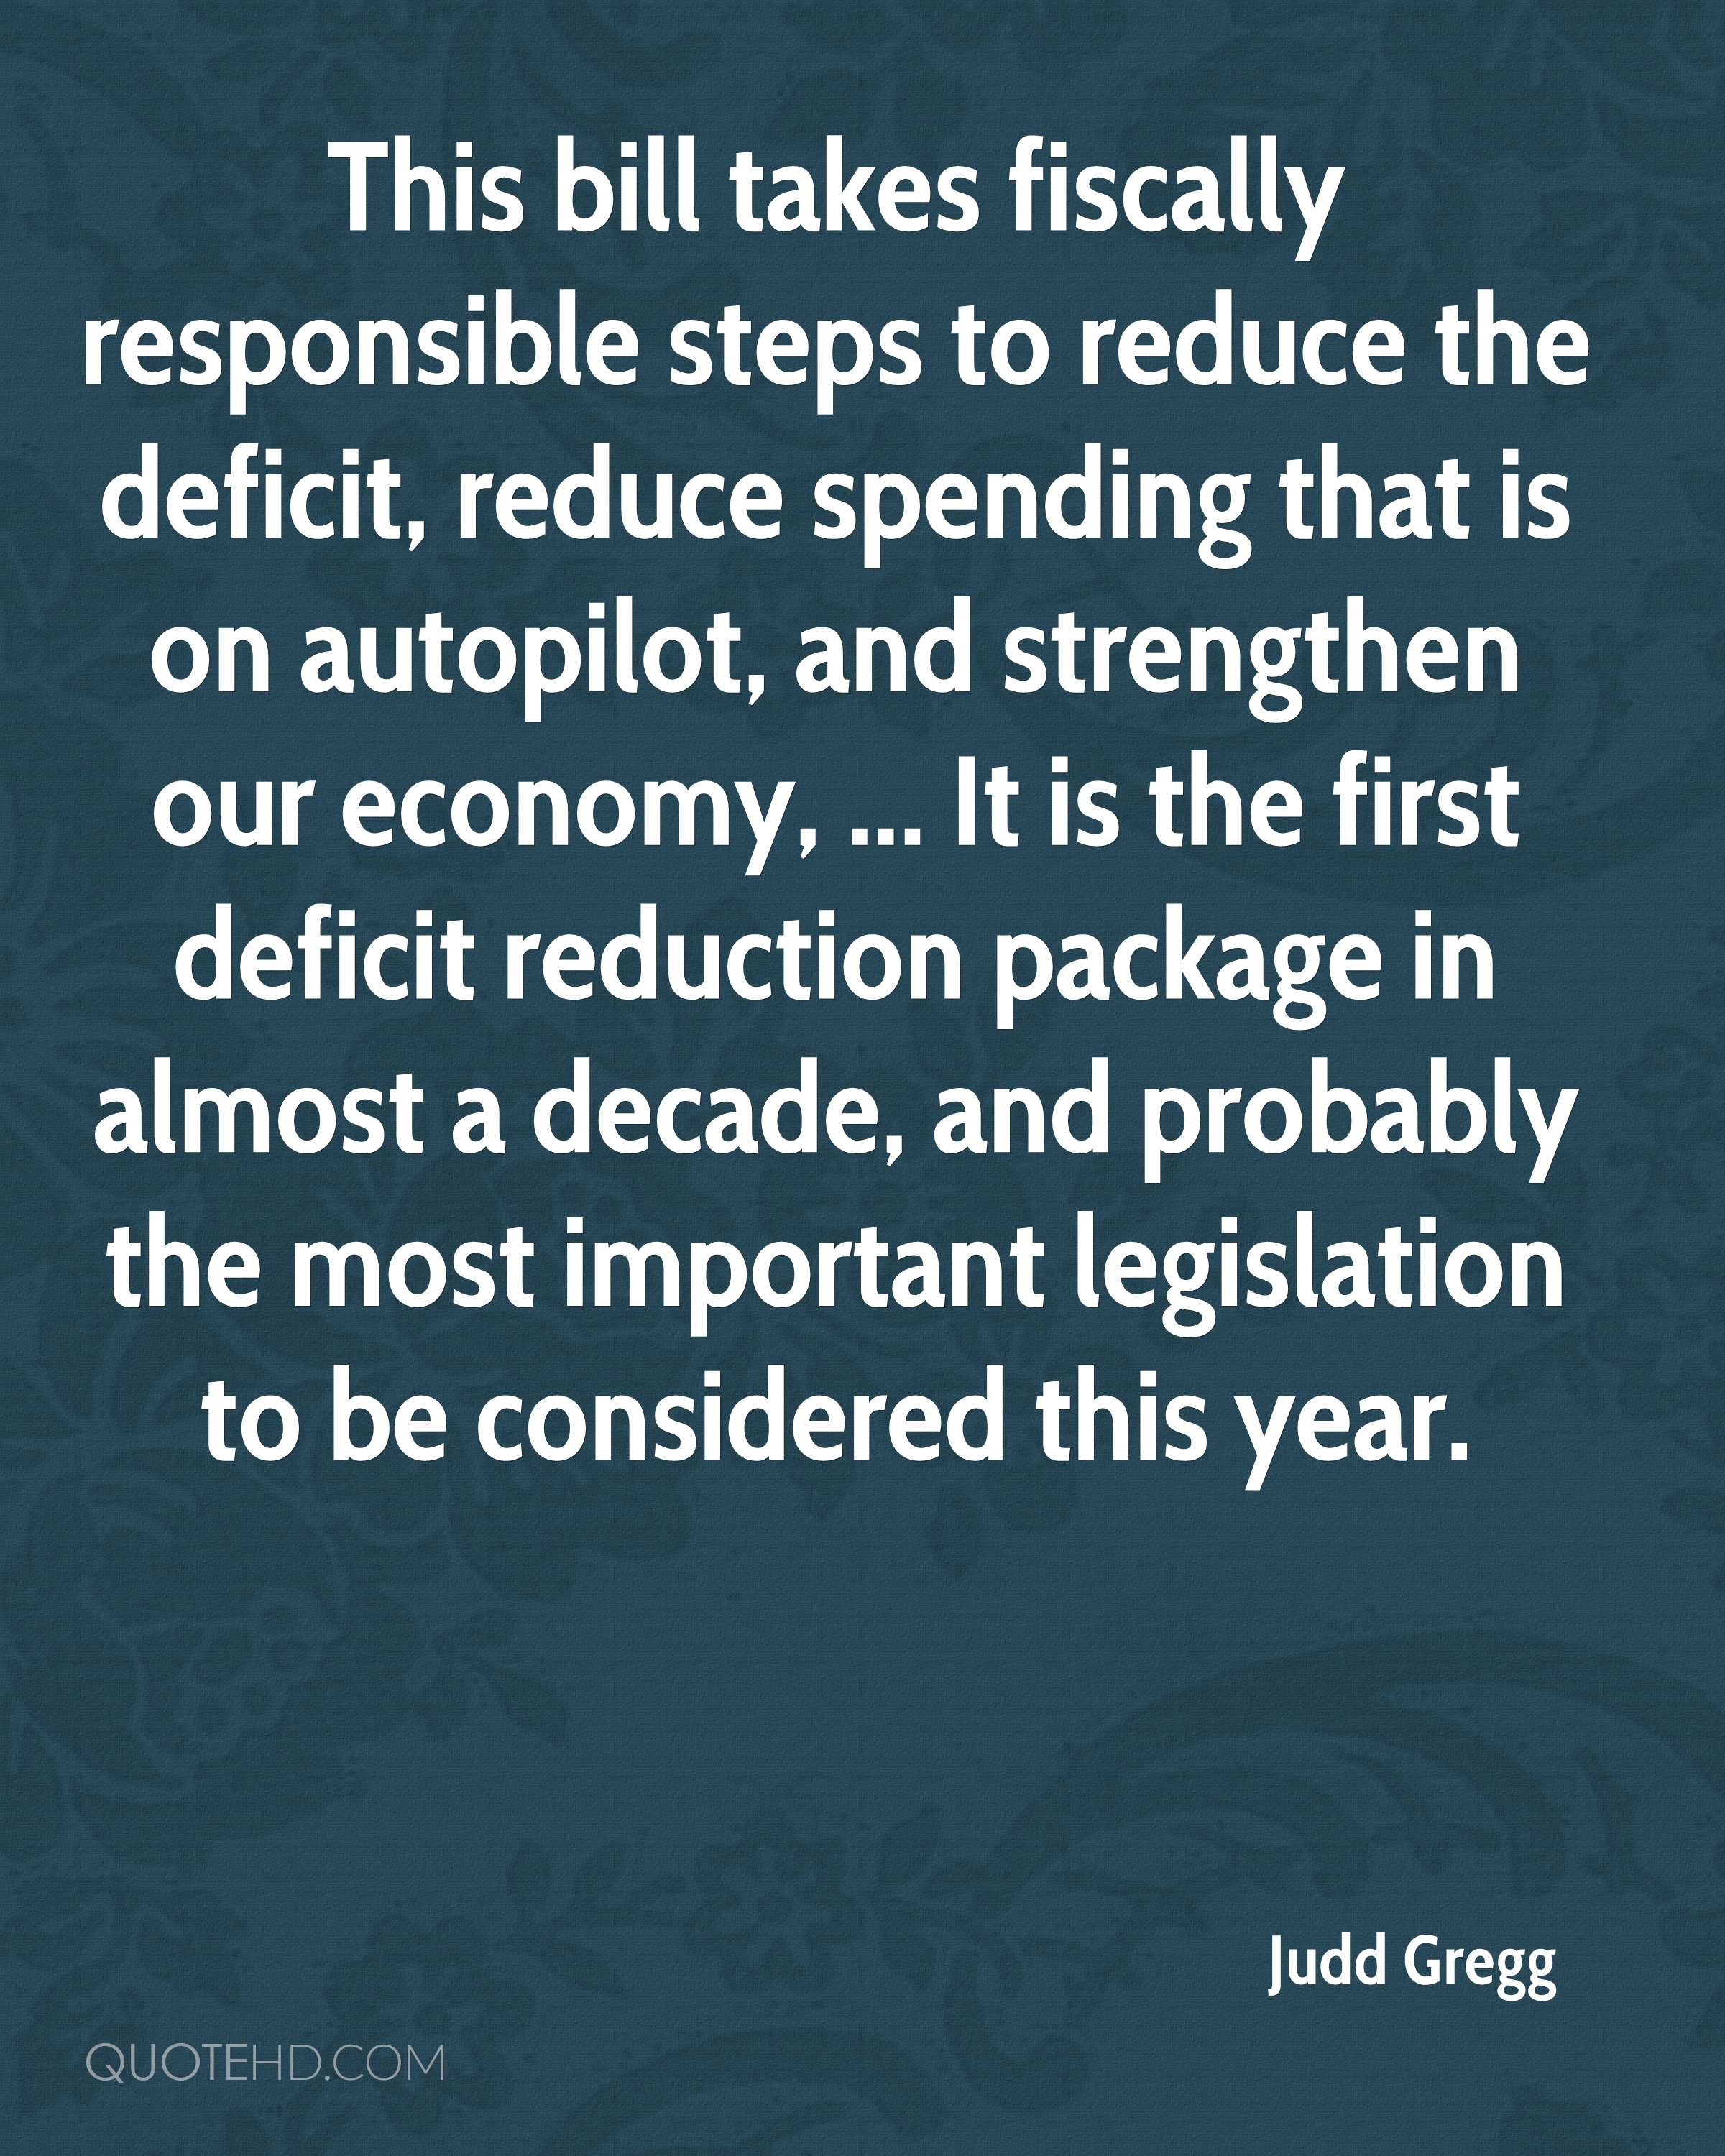 This bill takes fiscally responsible steps to reduce the deficit, reduce spending that is on autopilot, and strengthen our economy, ... It is the first deficit reduction package in almost a decade, and probably the most important legislation to be considered this year.